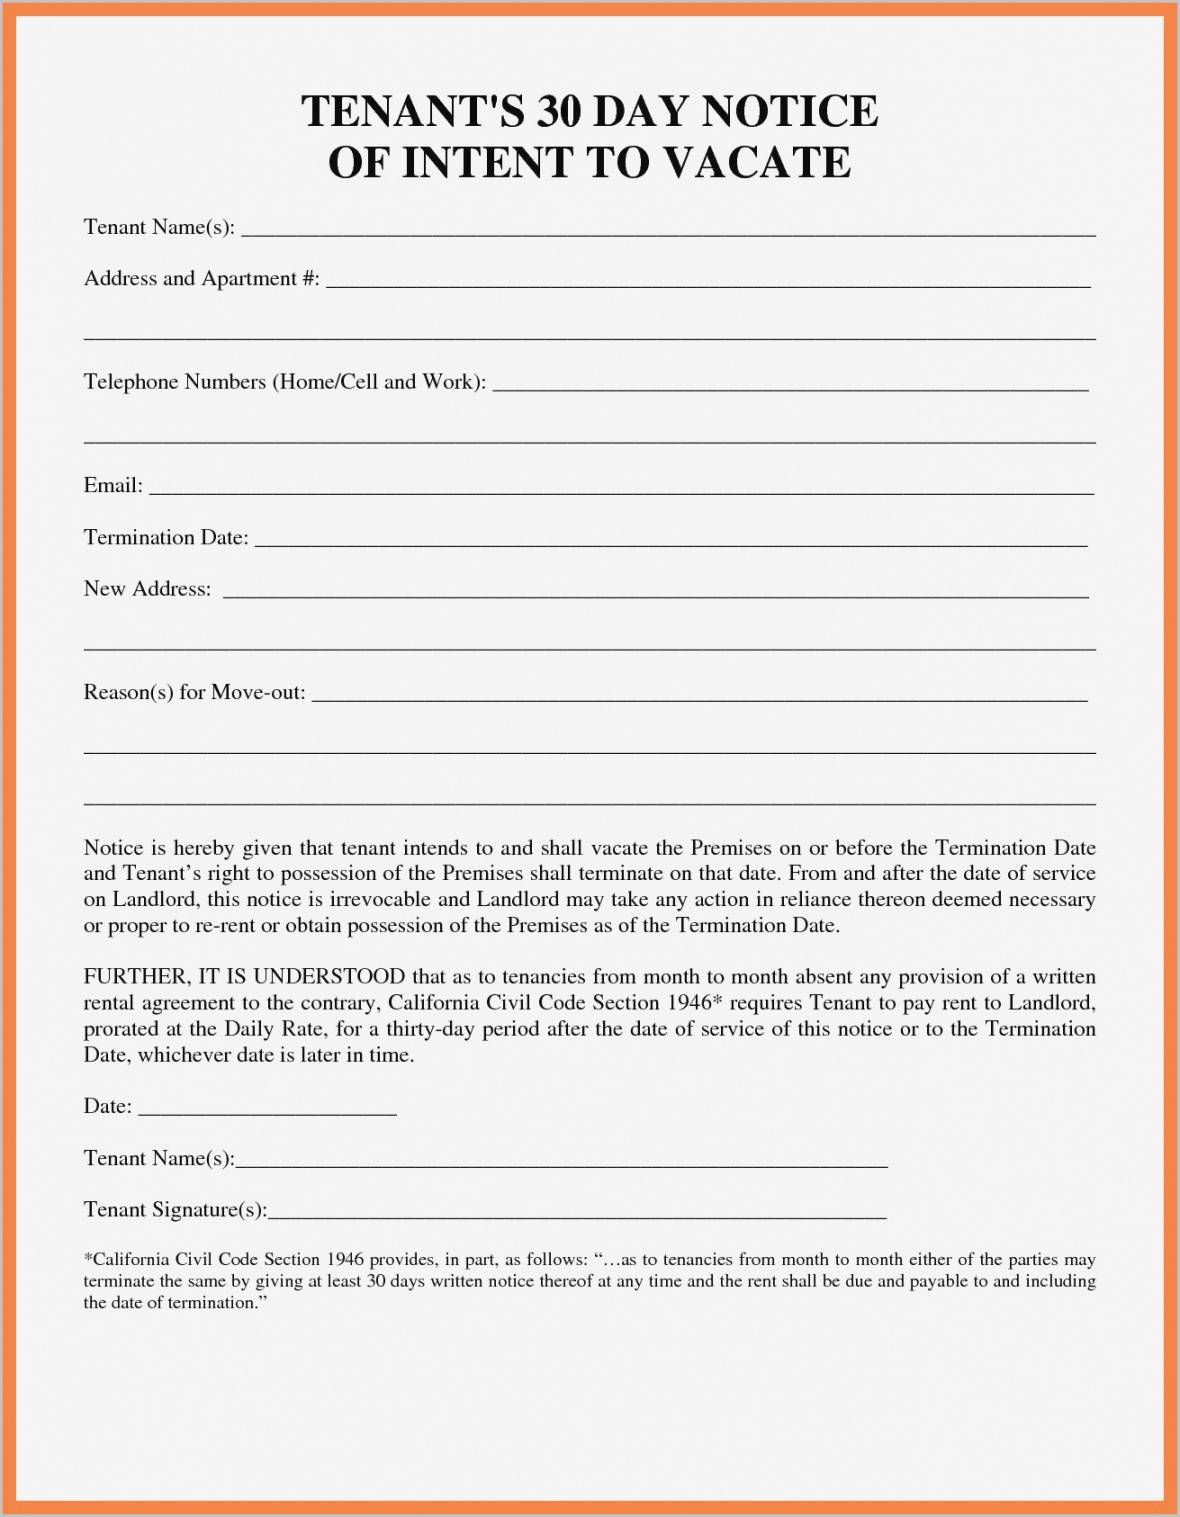 Get Our Printable 30 Day Vacancy Notice Template in 2020